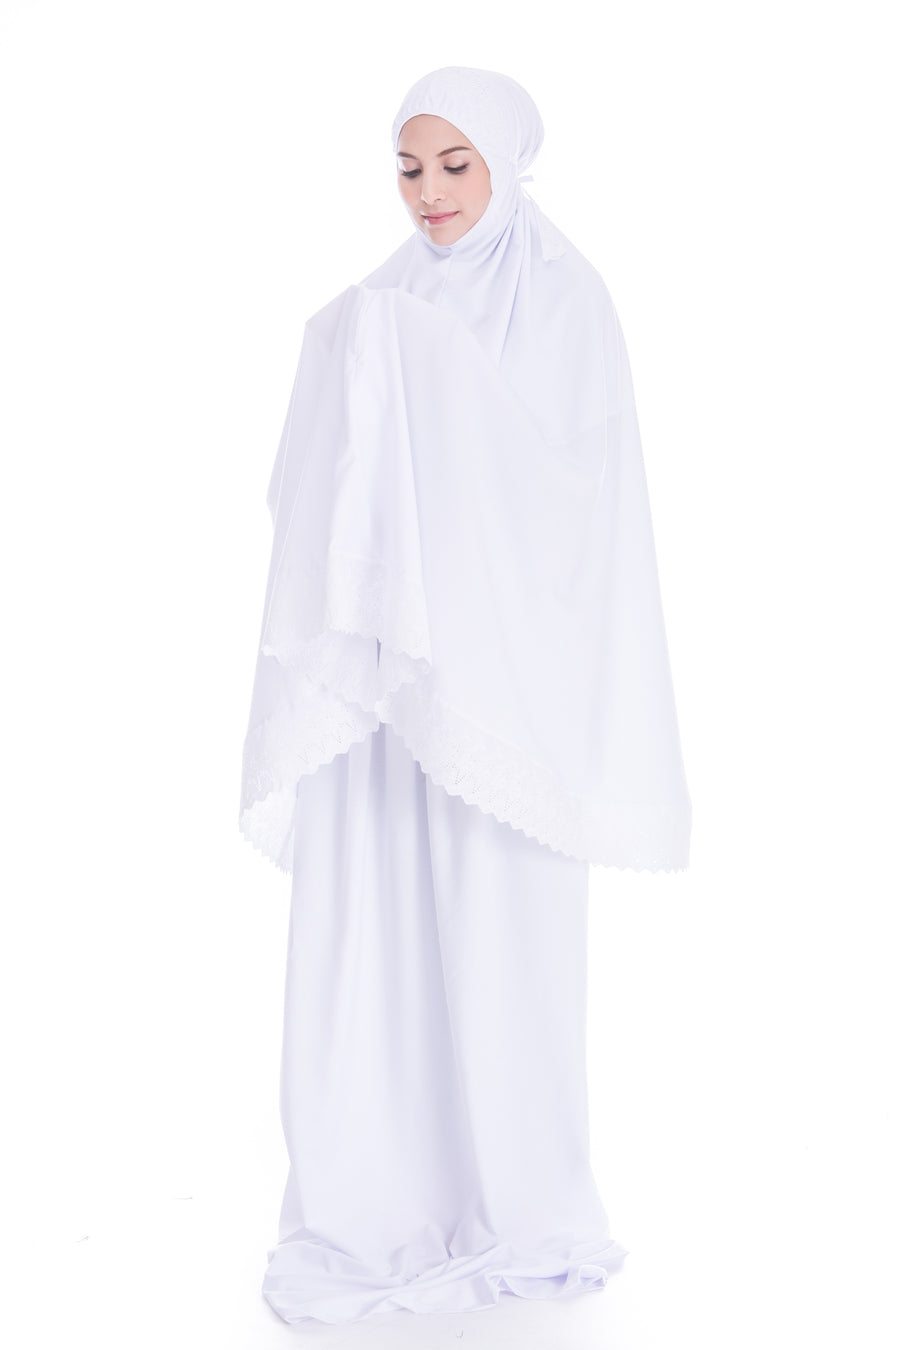 Telekung Soraya - White (Normal - No Pocket)